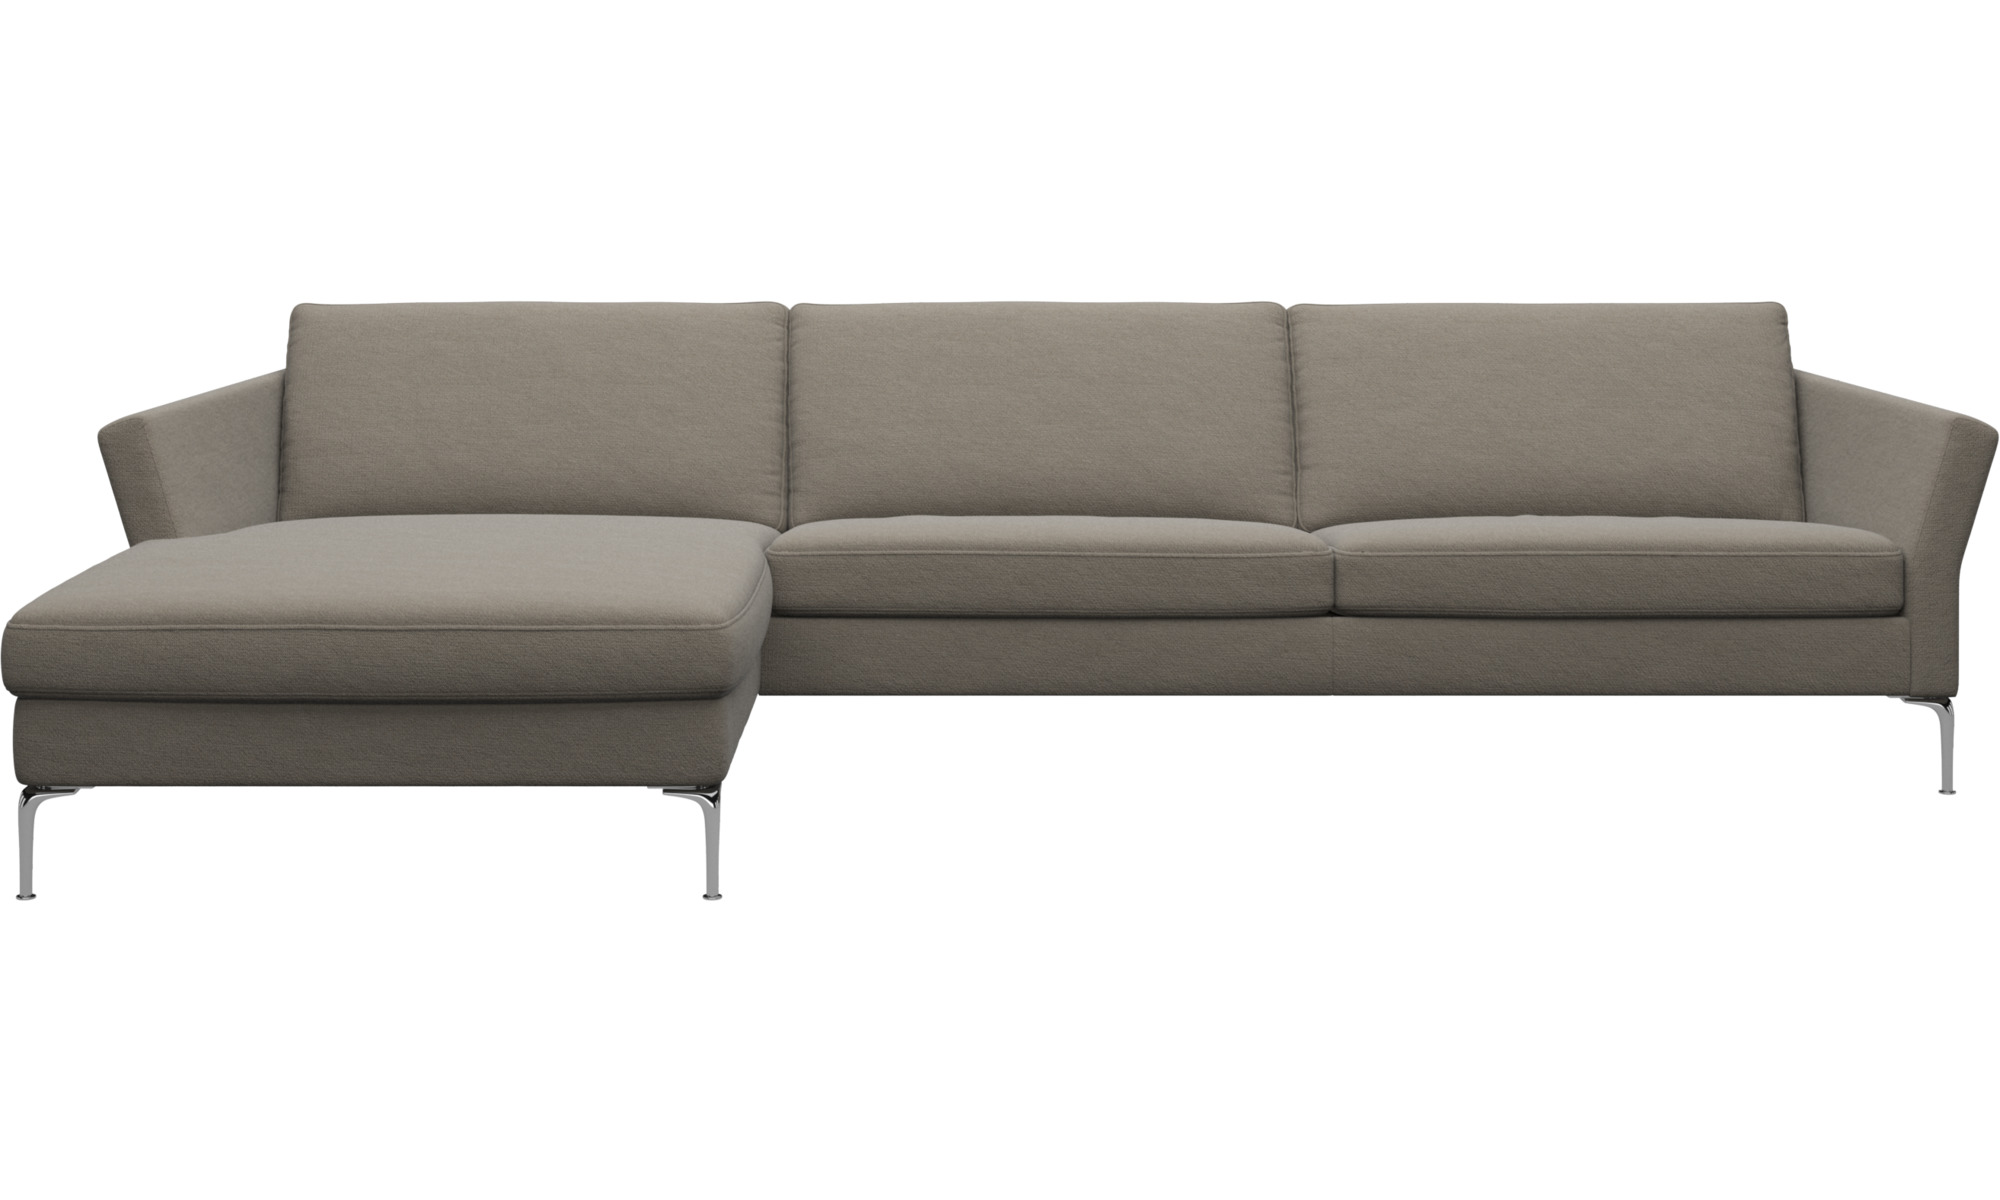 MARSEILLE SOFA WITH RESTING UNIT